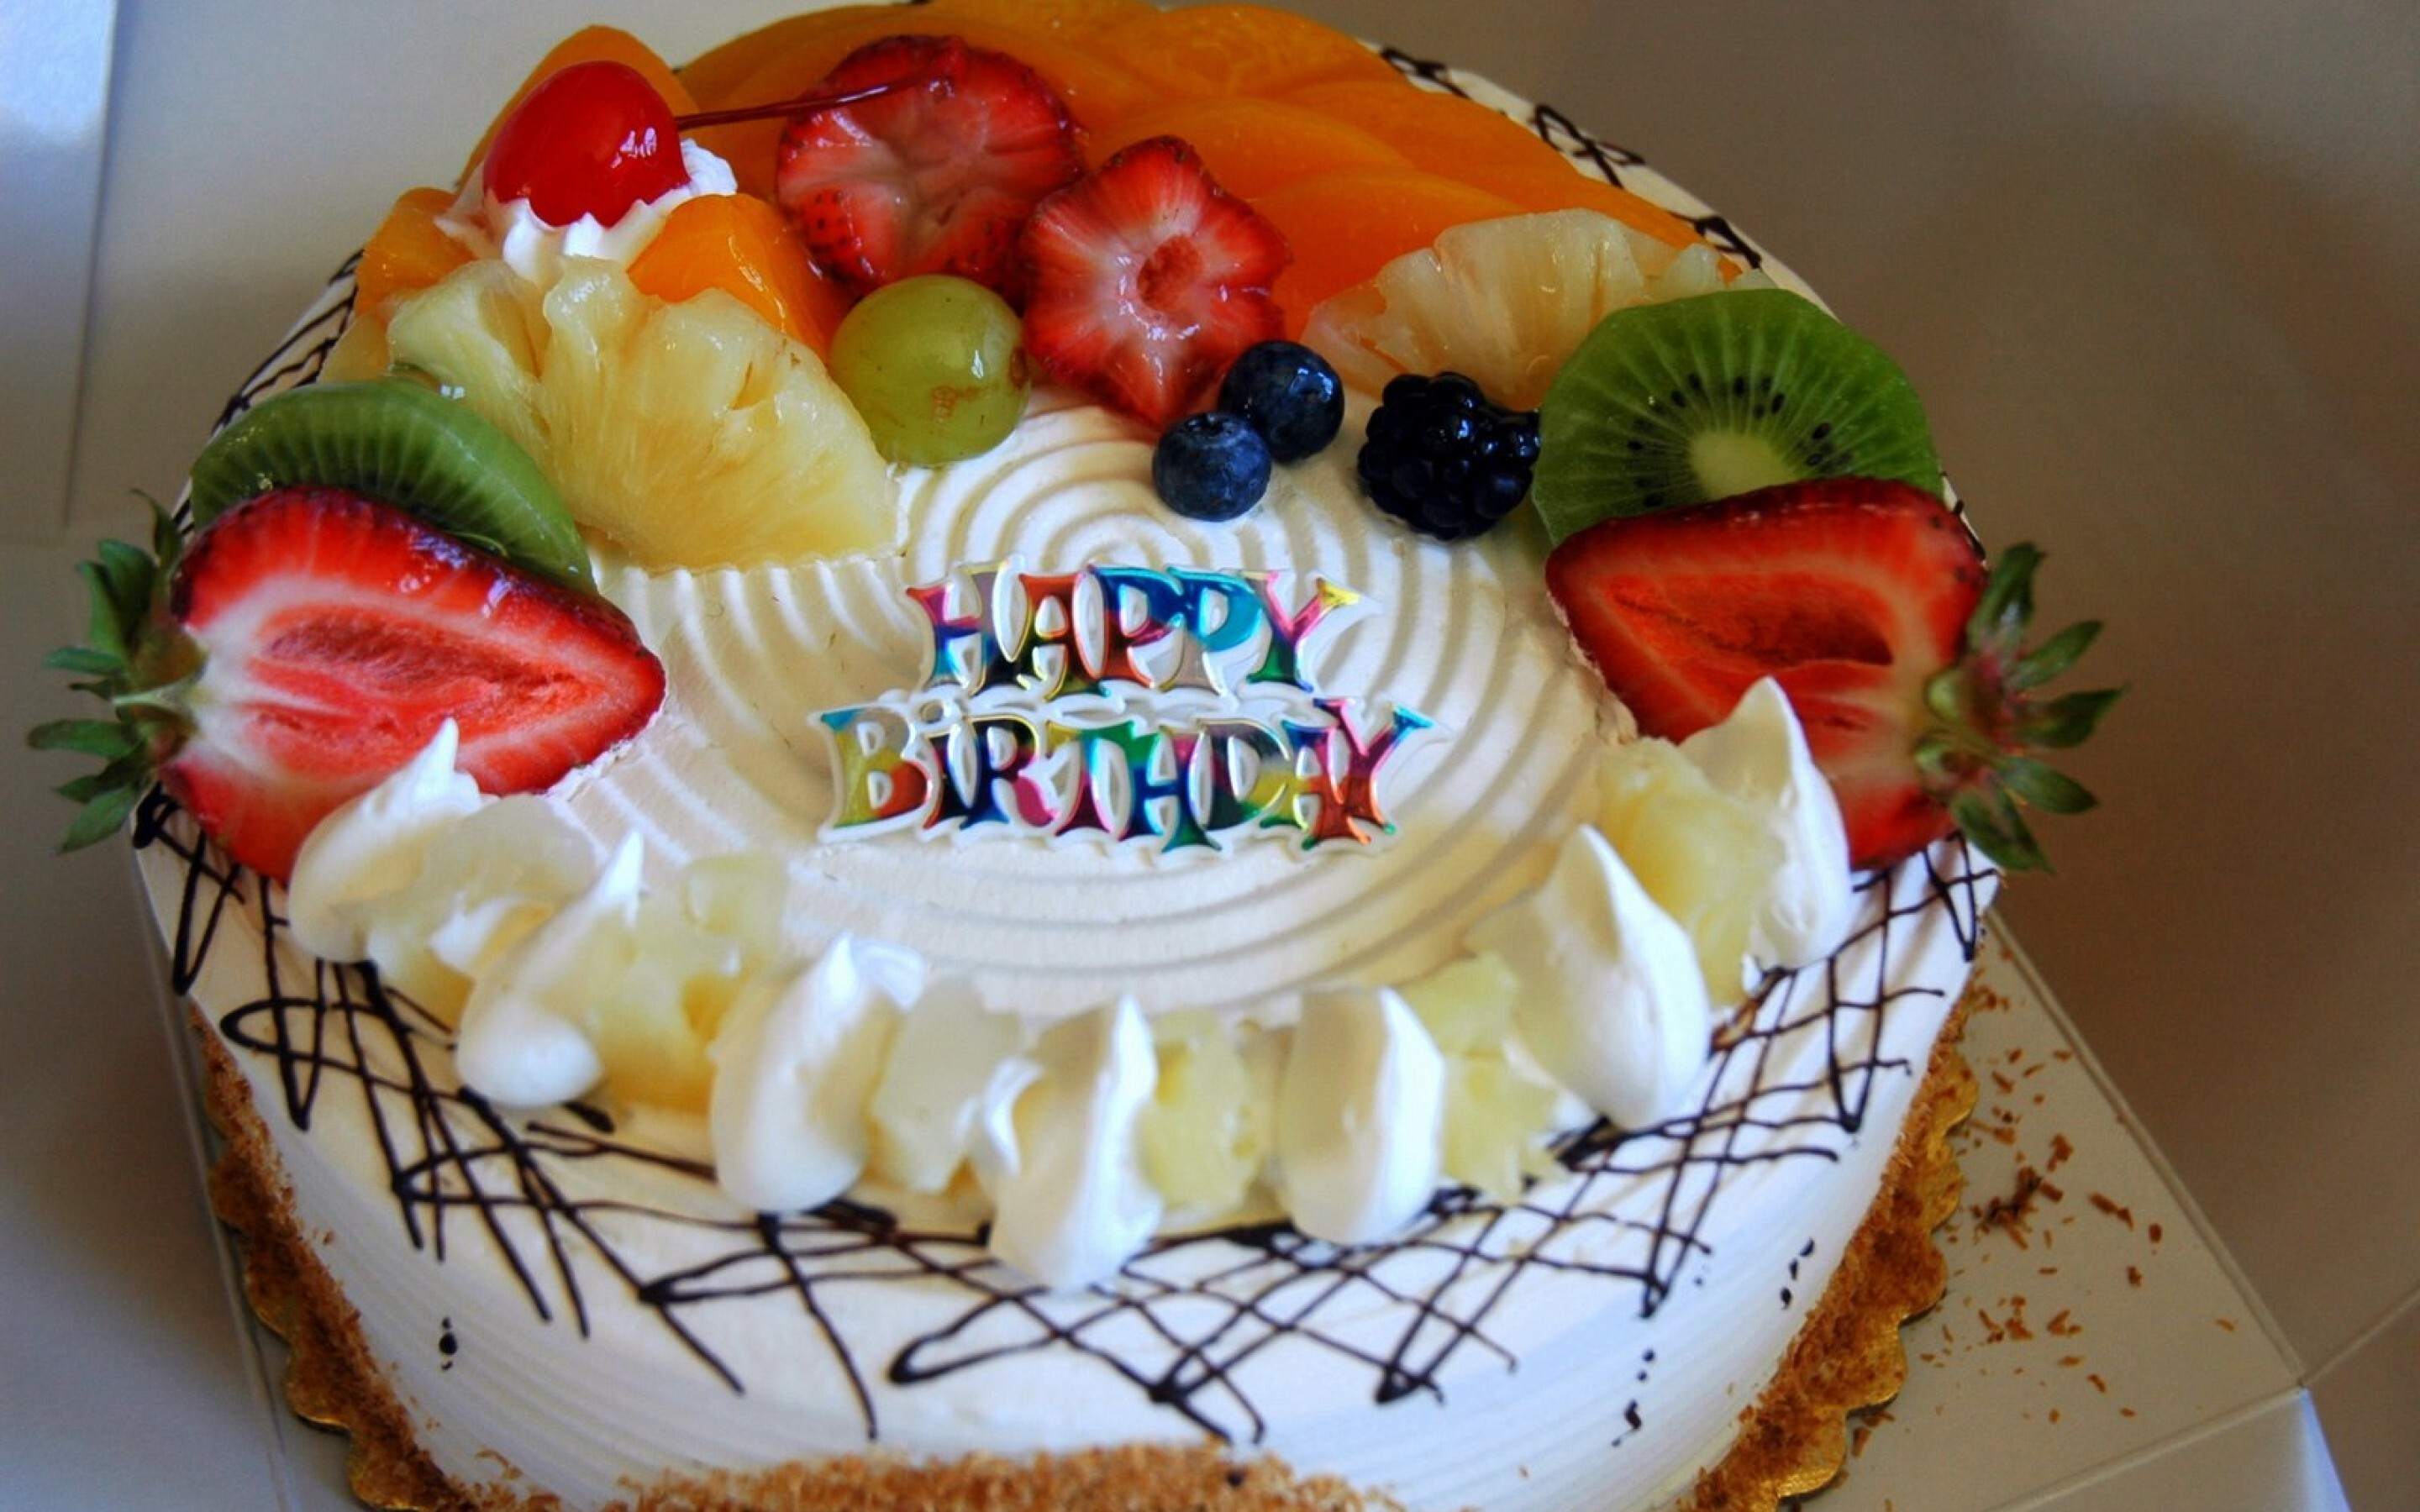 Amazing Beautiful Fruits Birthday Cake Wallpapers Hd Wallpapers